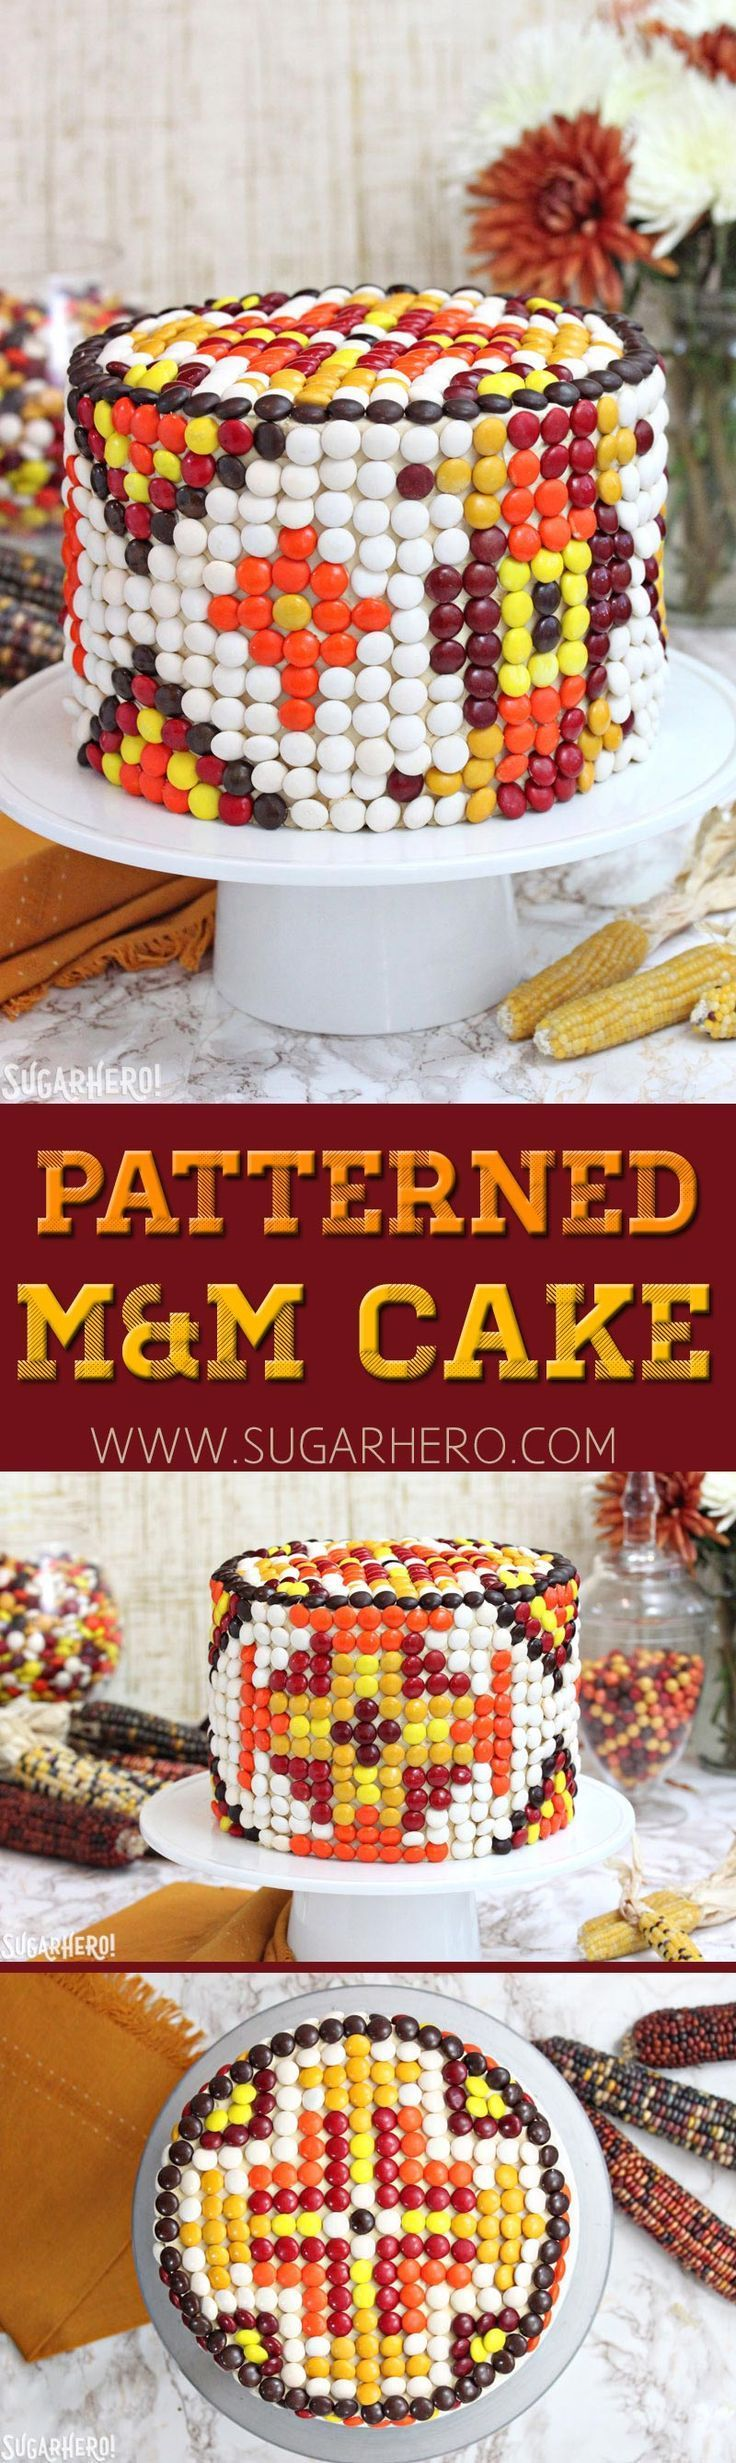 Patterned MMs Cake